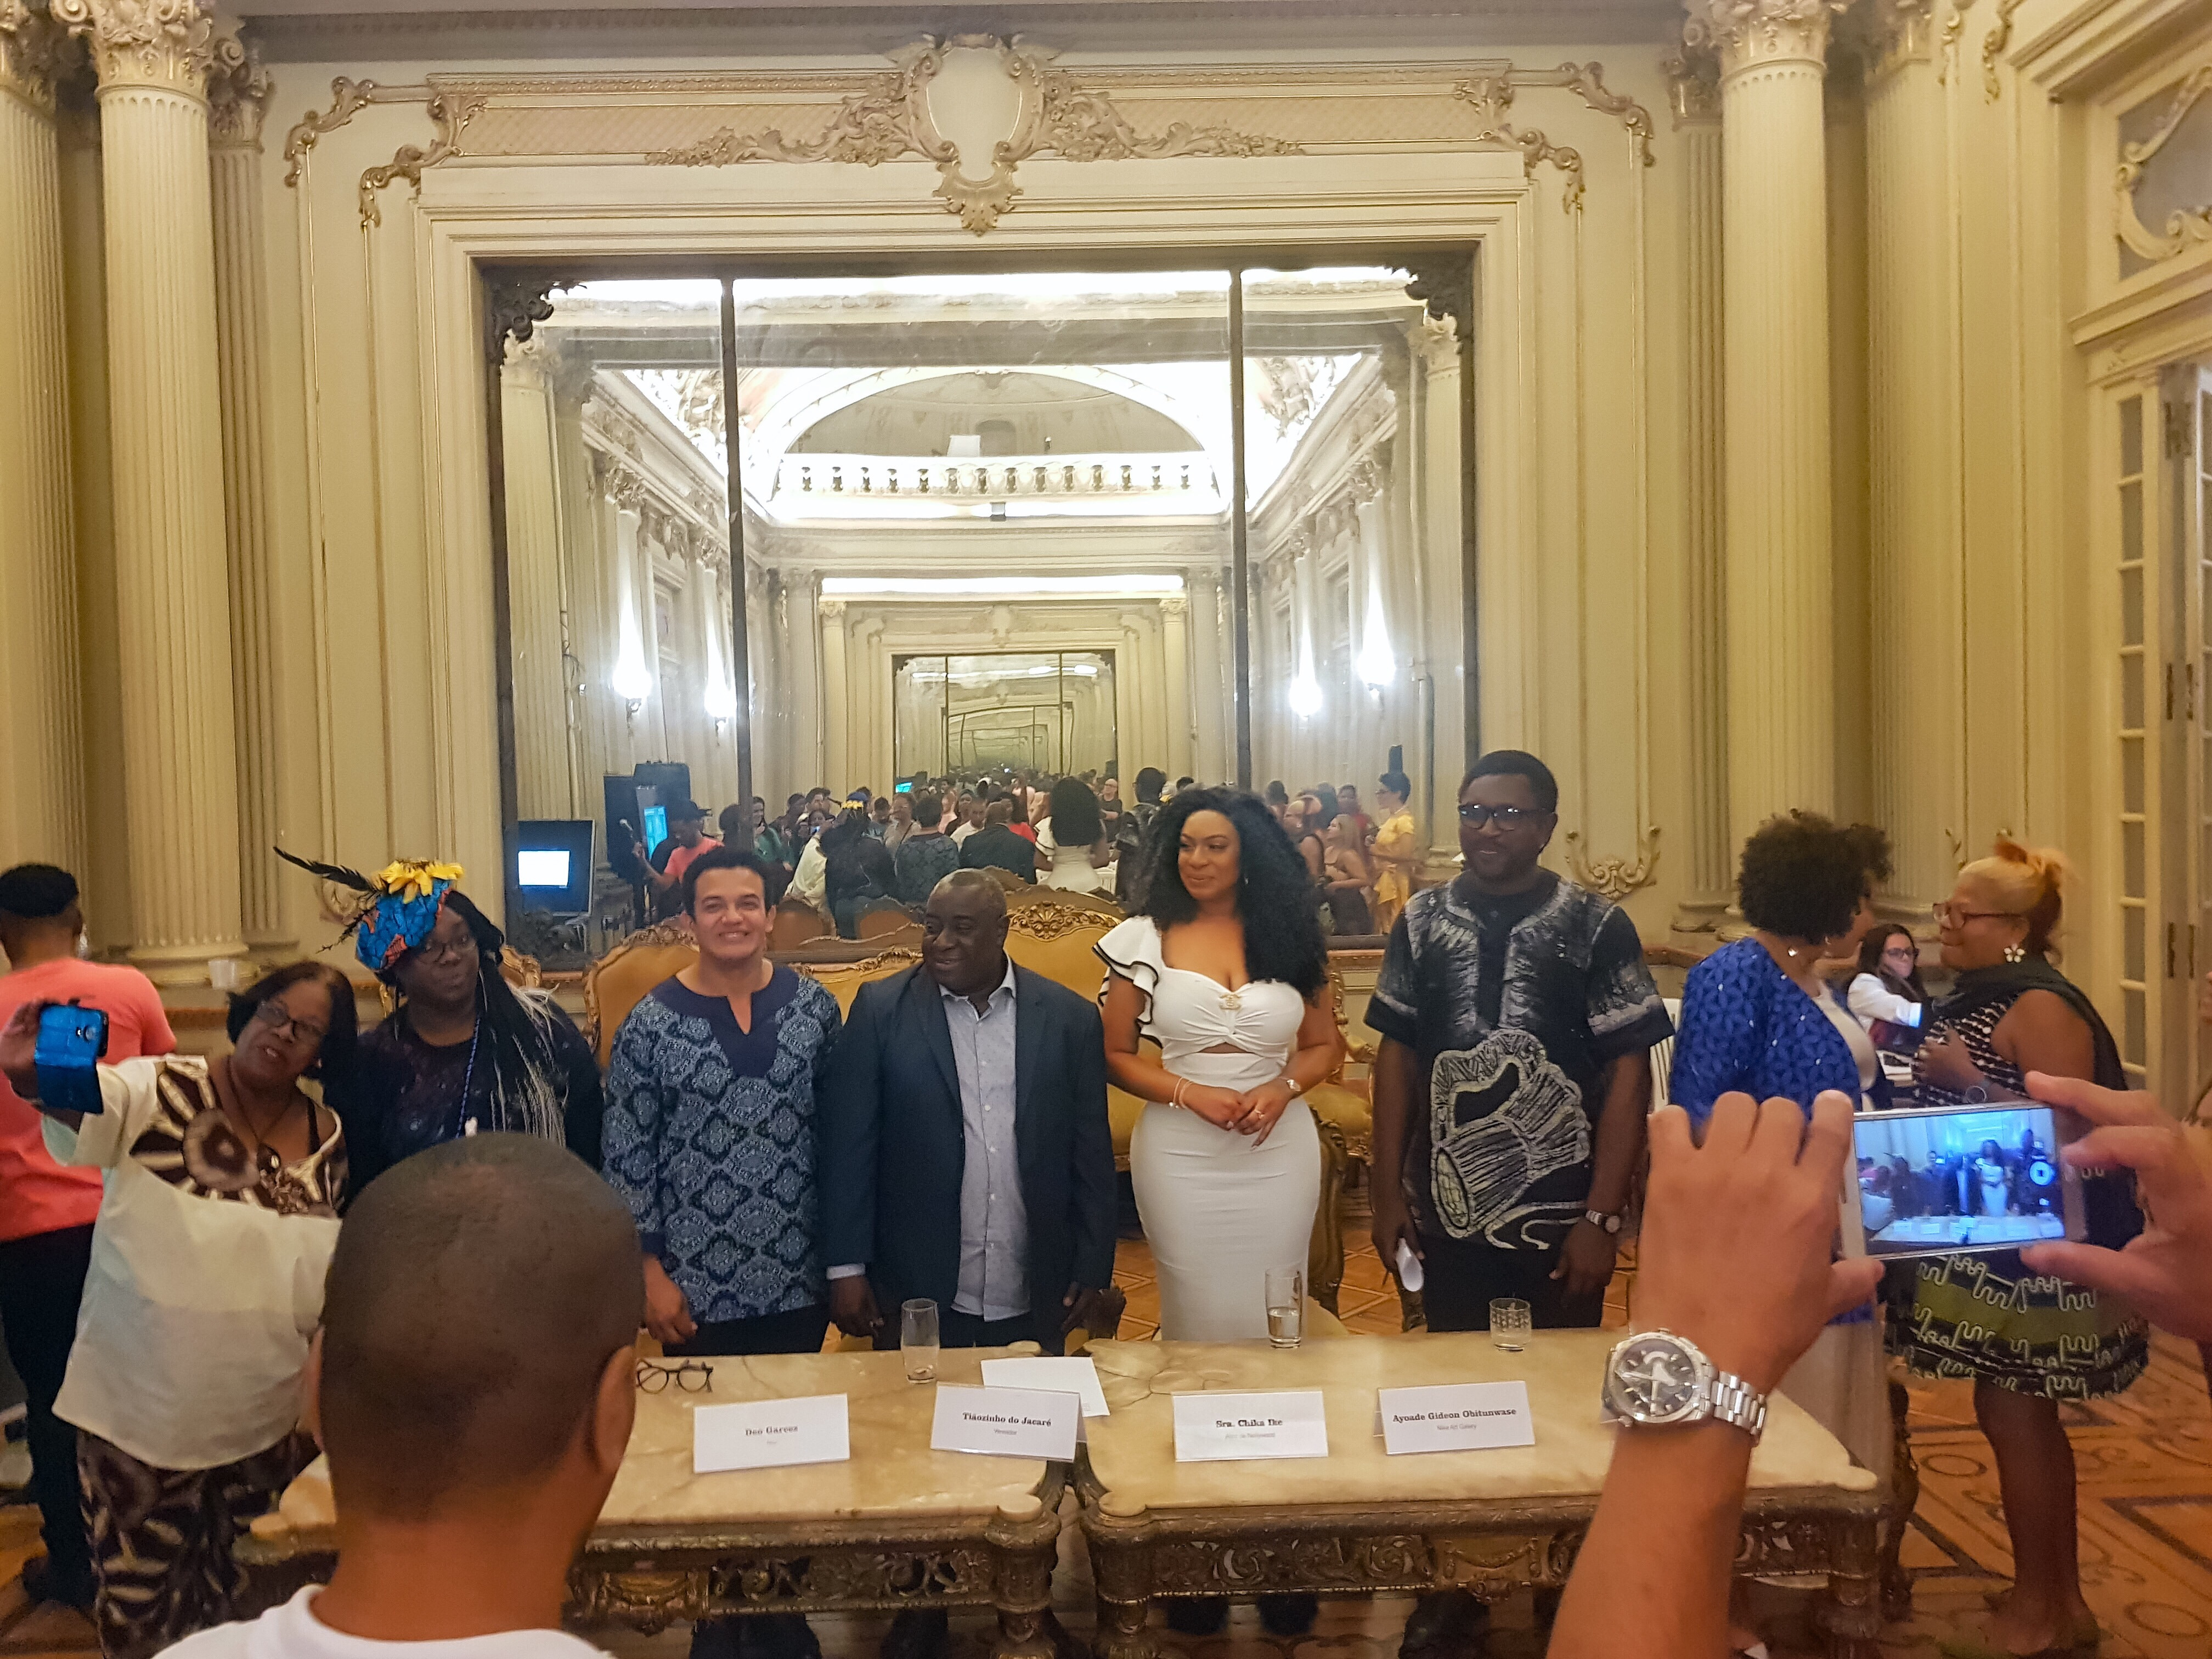 Chika Ike Speaks at an event in Brazil